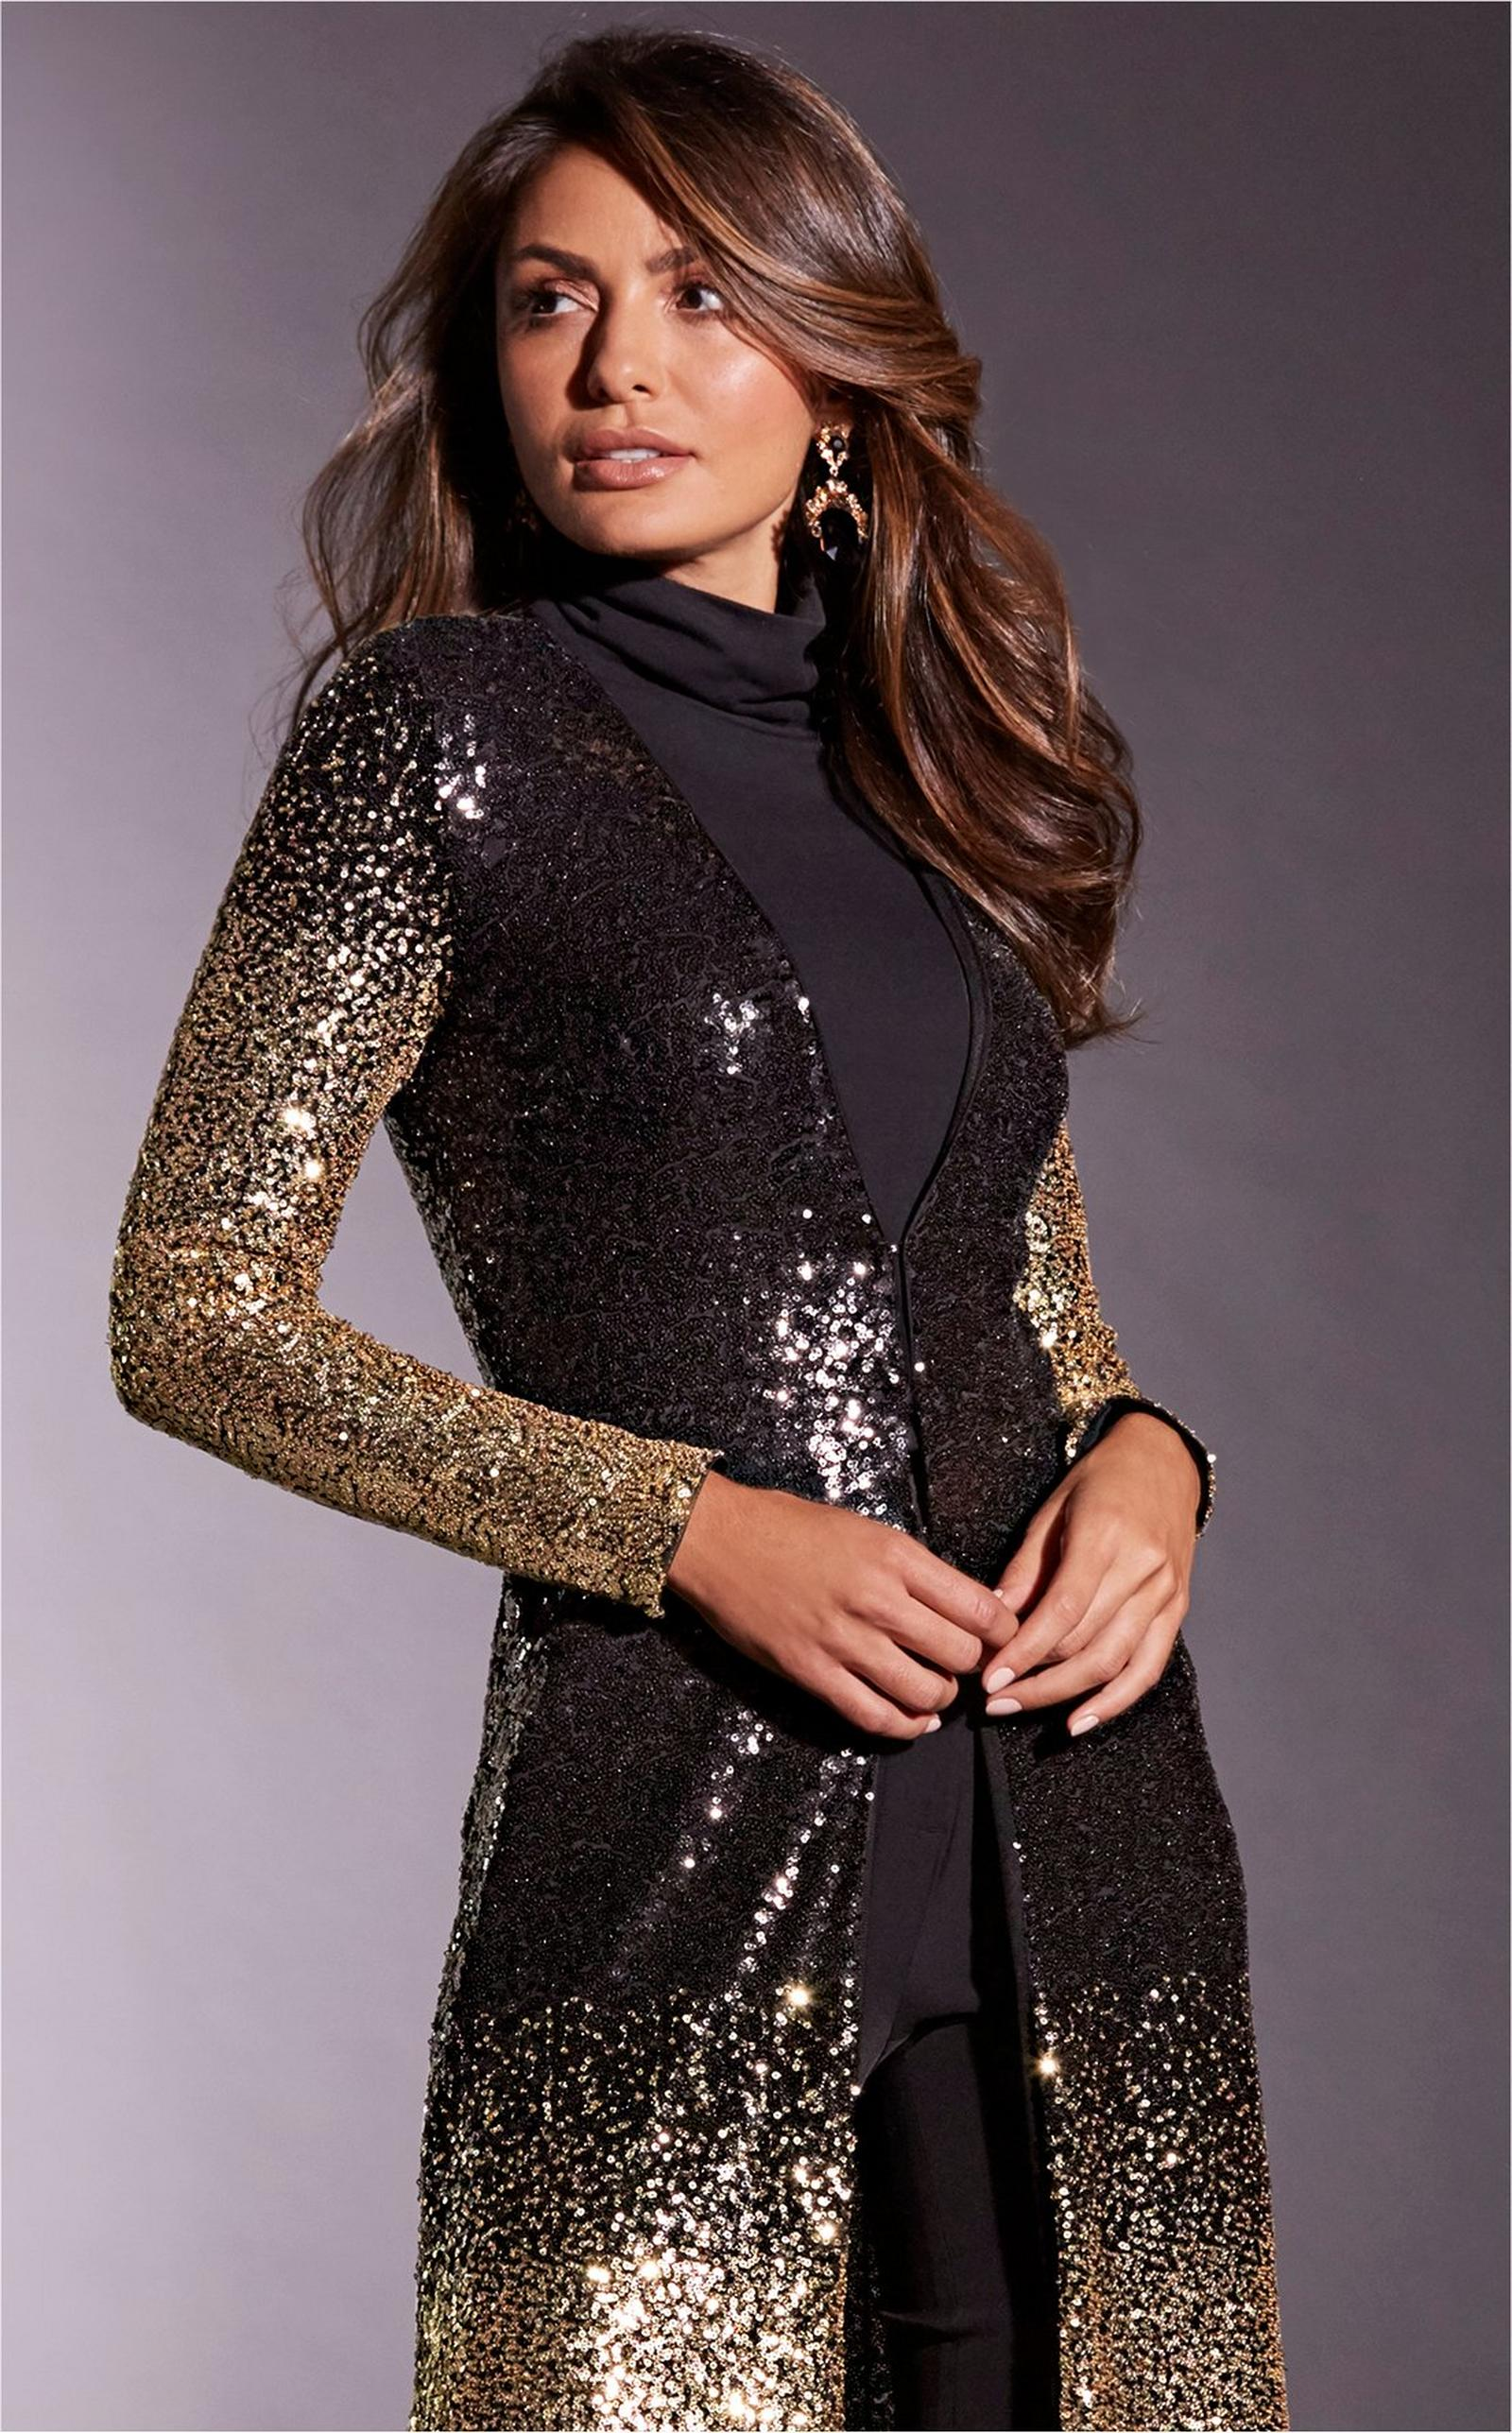 model wearing sequin black and gold duster over black turtleneck.